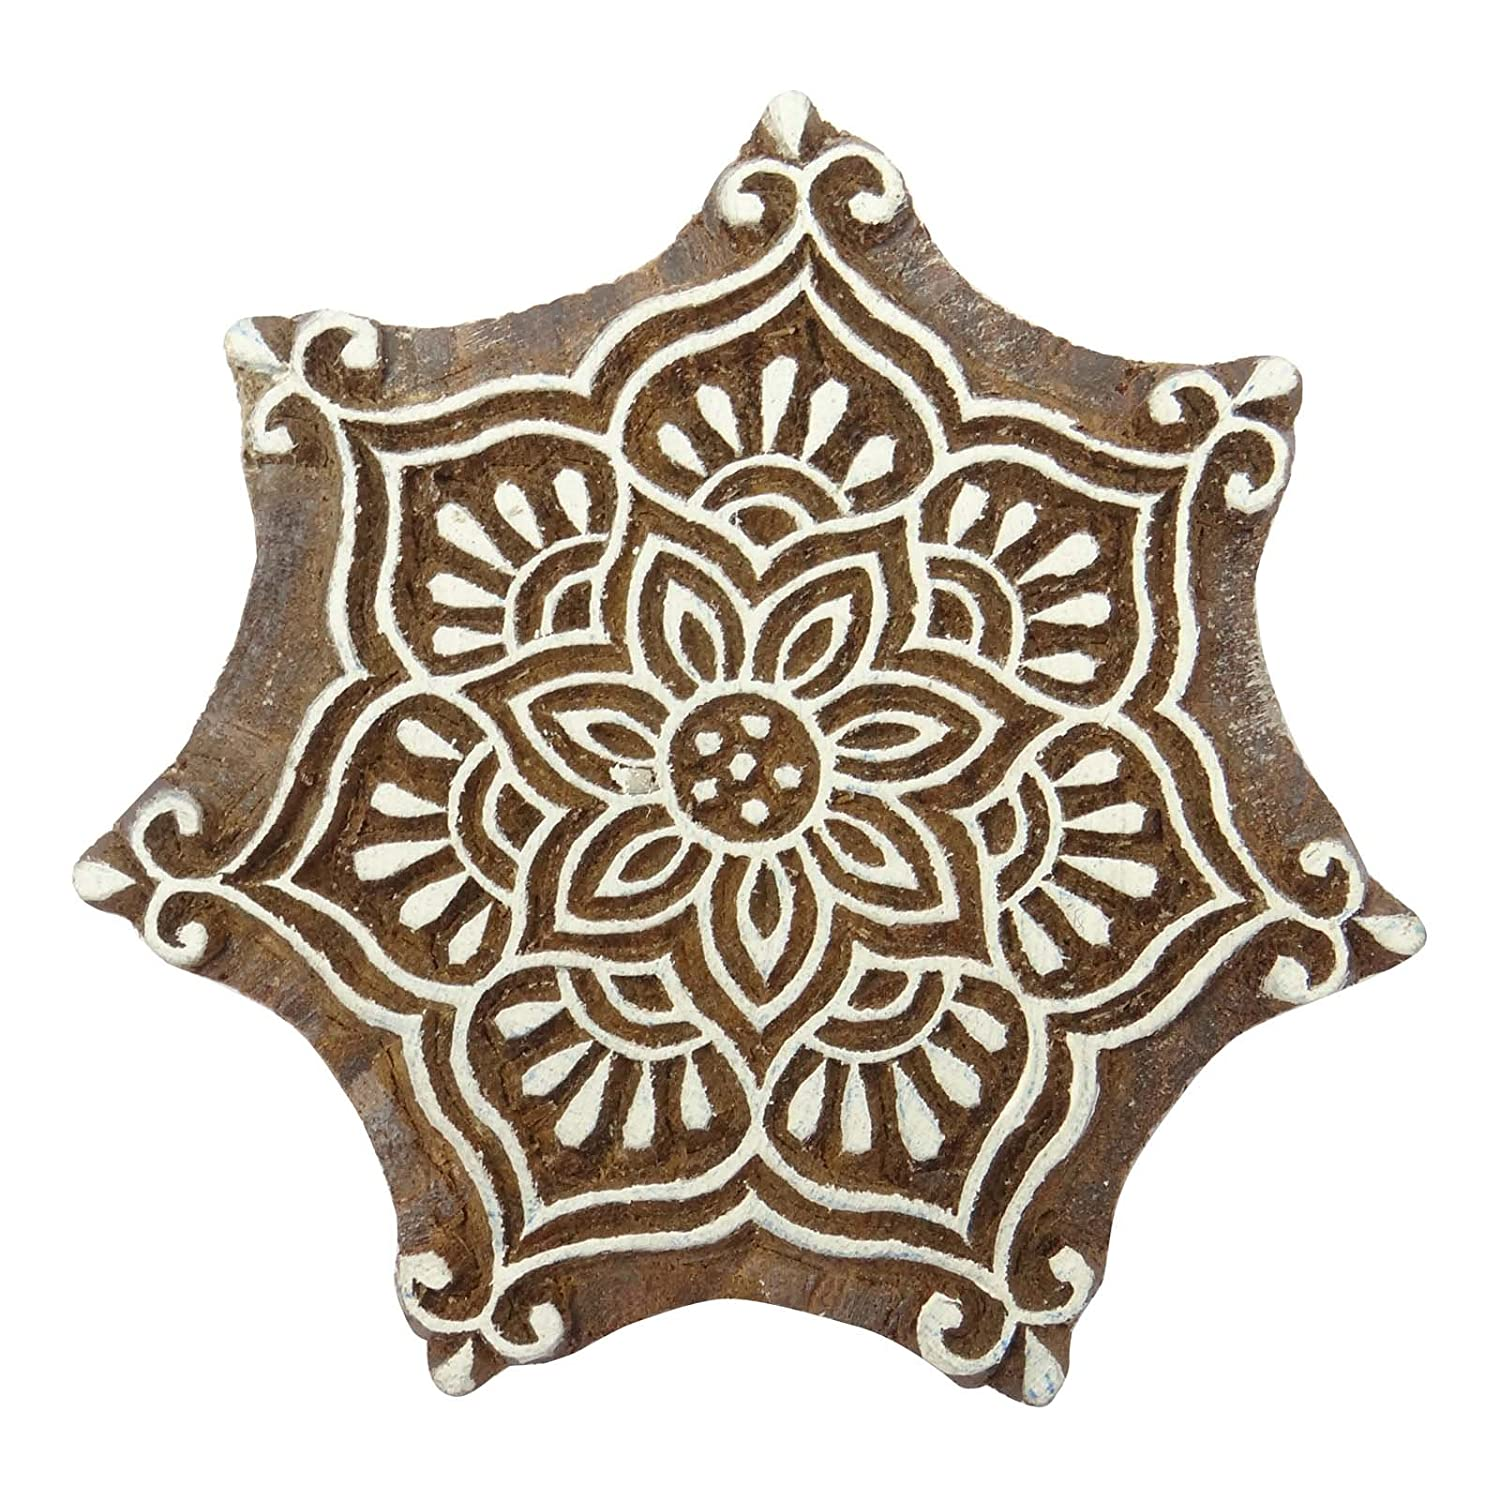 Decorative Floral Printing Blocks Wooden Hand Carved Block Indian Stamp Indianbeautifulart